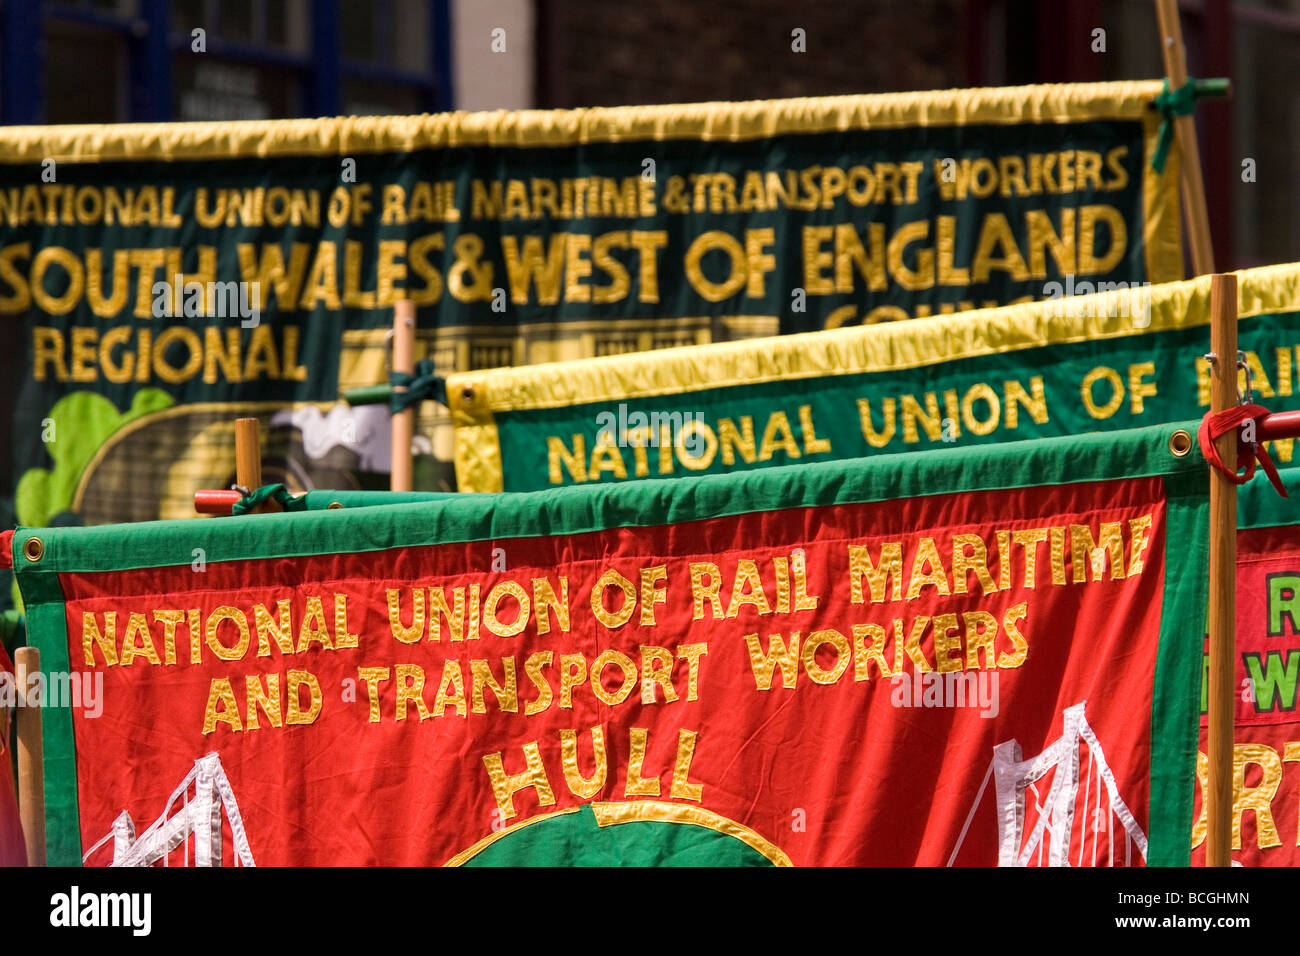 Trade Union banners are displayed during the 2009 Durham Miners' Gala. - Stock Image